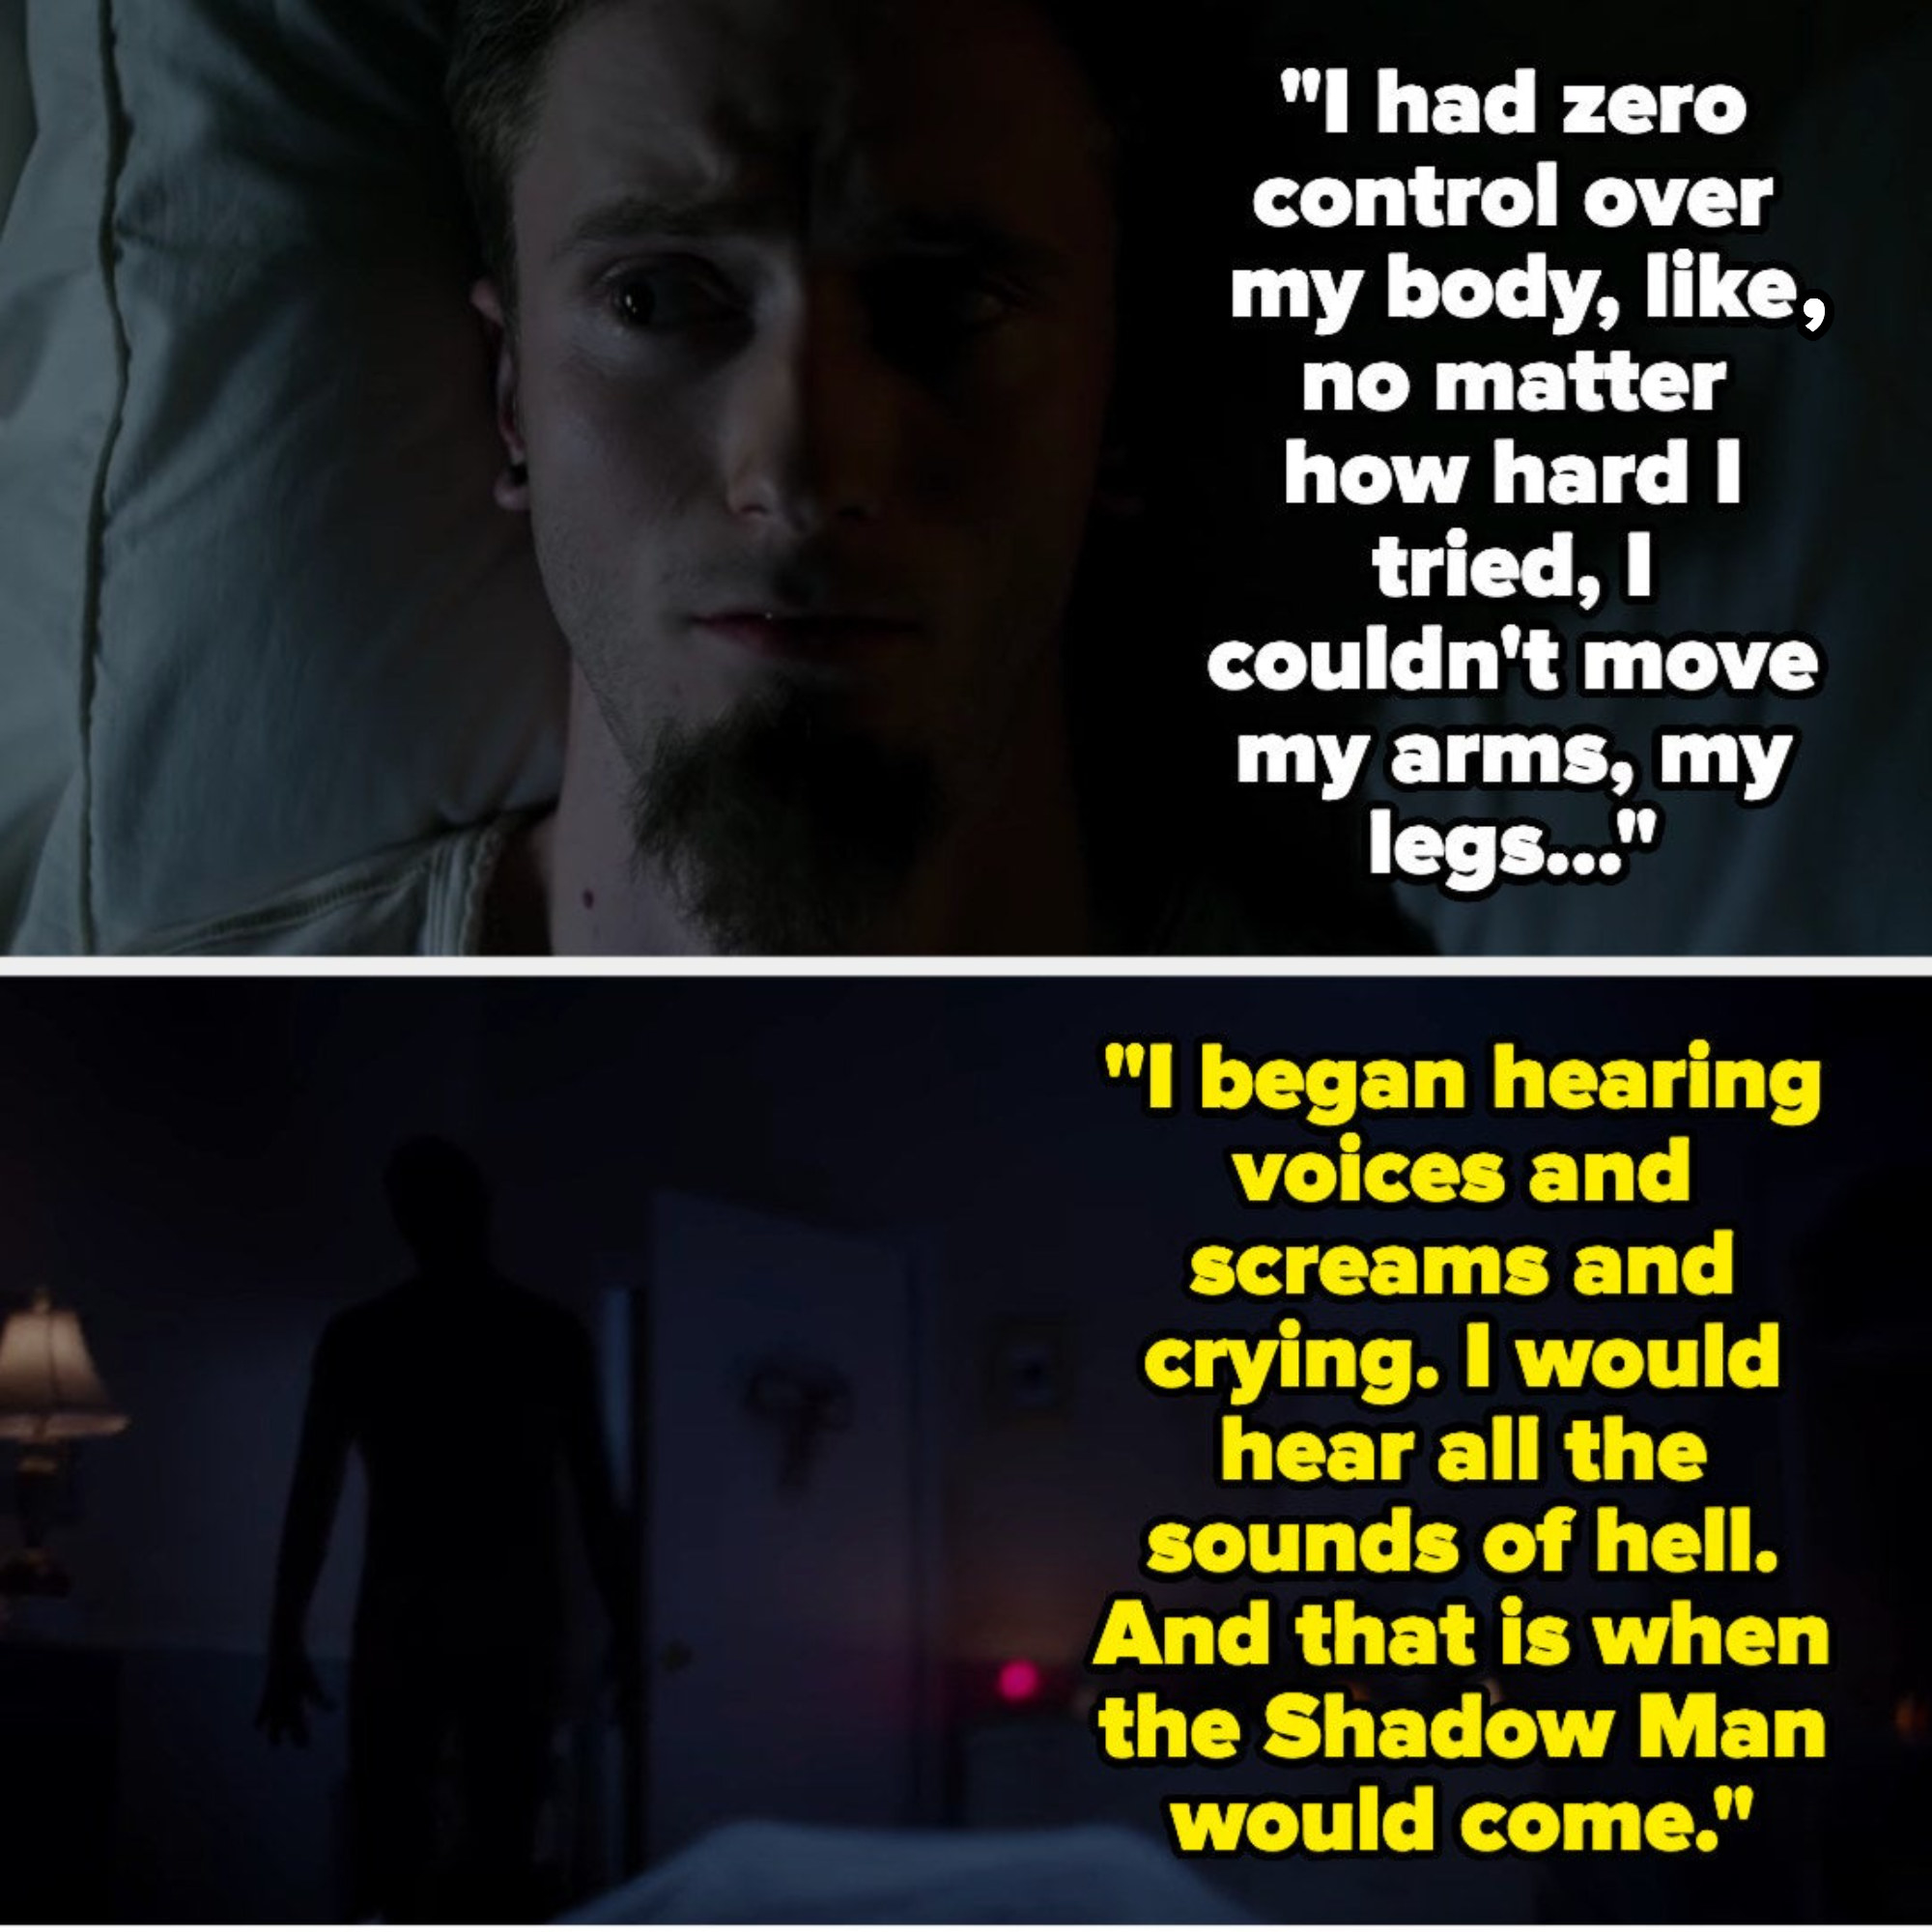 """One man talks about not being able to move and a woman talks about hearing """"the sounds of Hell"""" and the Shadow Man coming"""